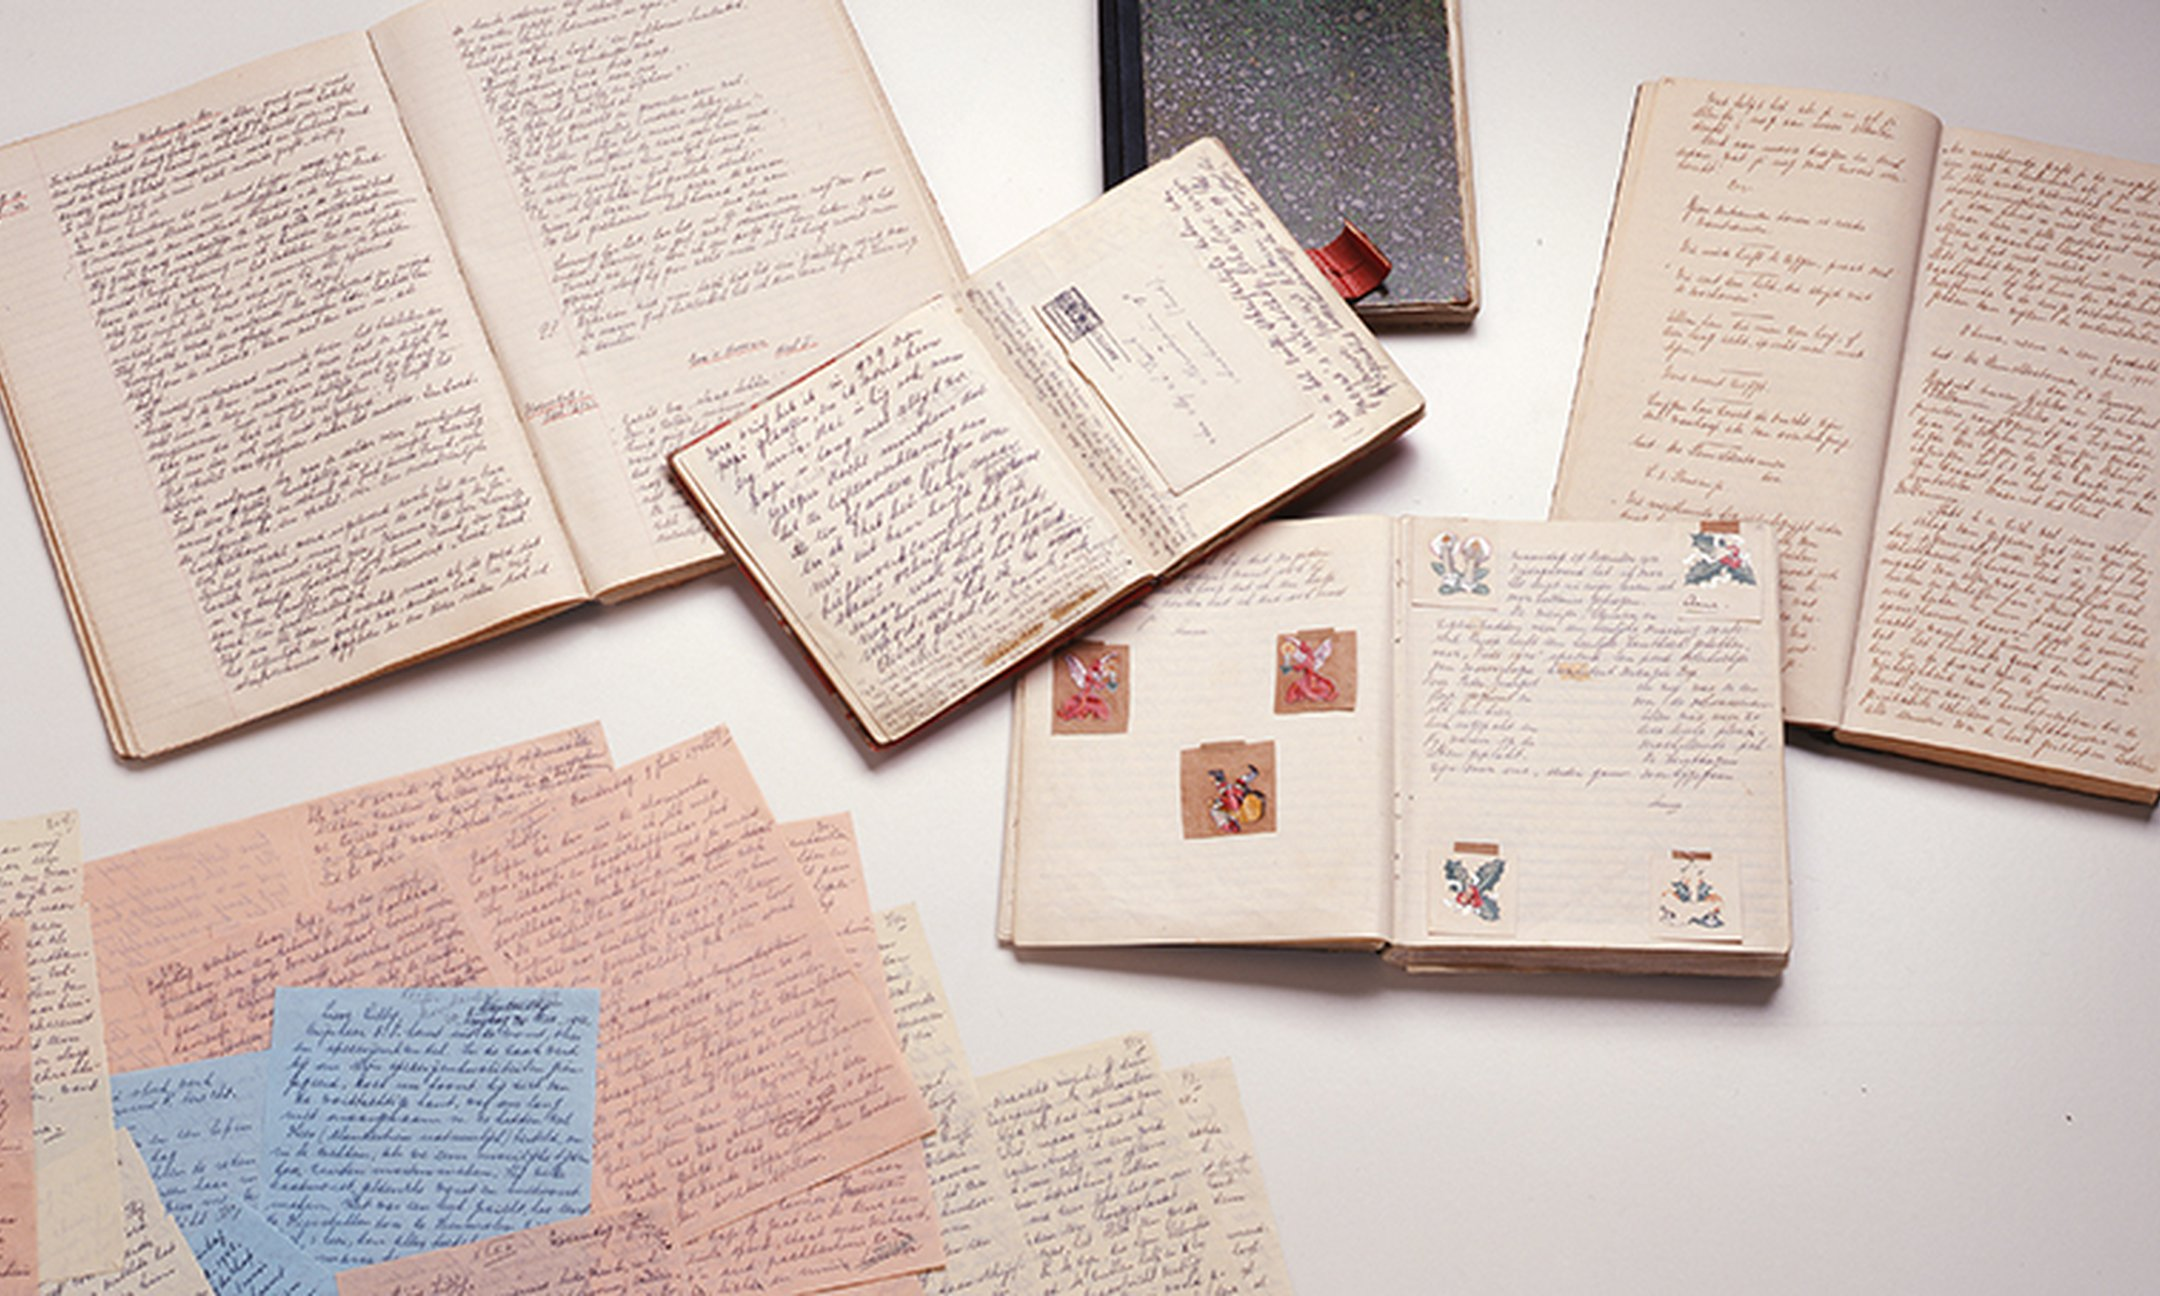 Original manuscripts of Anne Frank, with the diary, the loose sheets, and the notebooks with short stories and beautiful sentences.